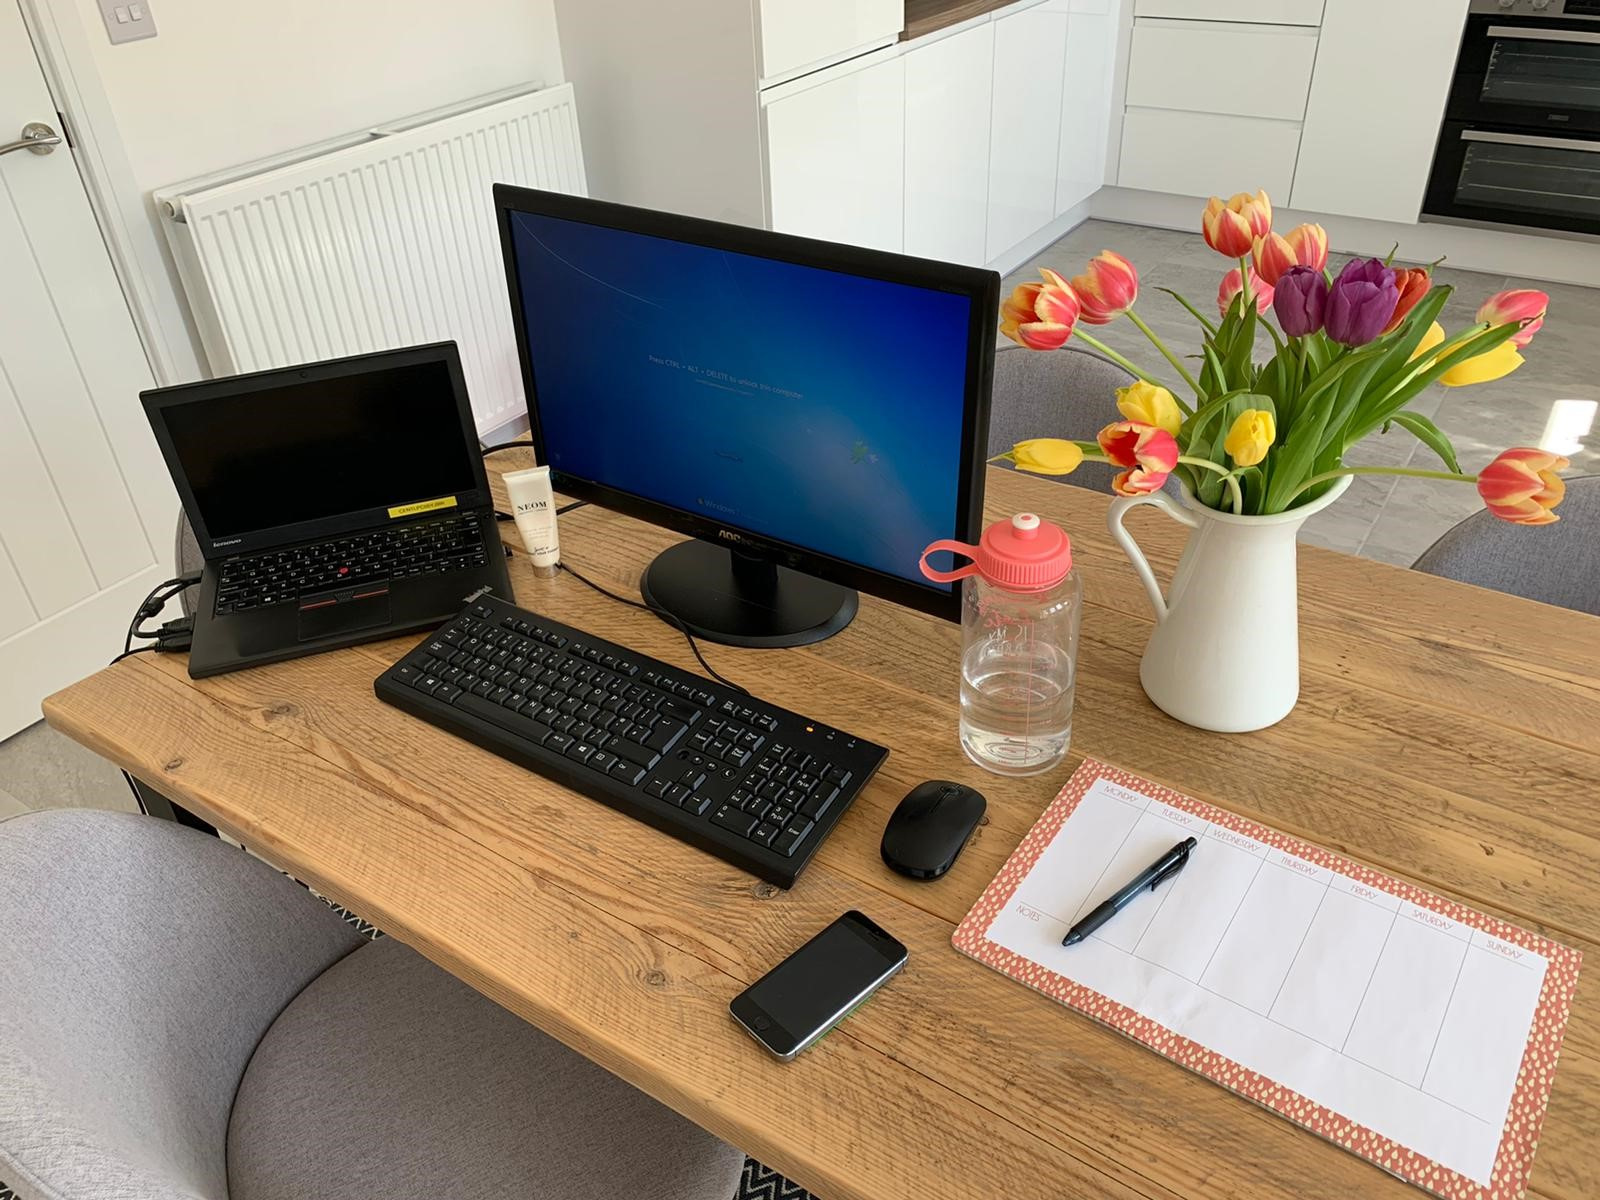 6 Tips To Work Well From Home During Coronavirus